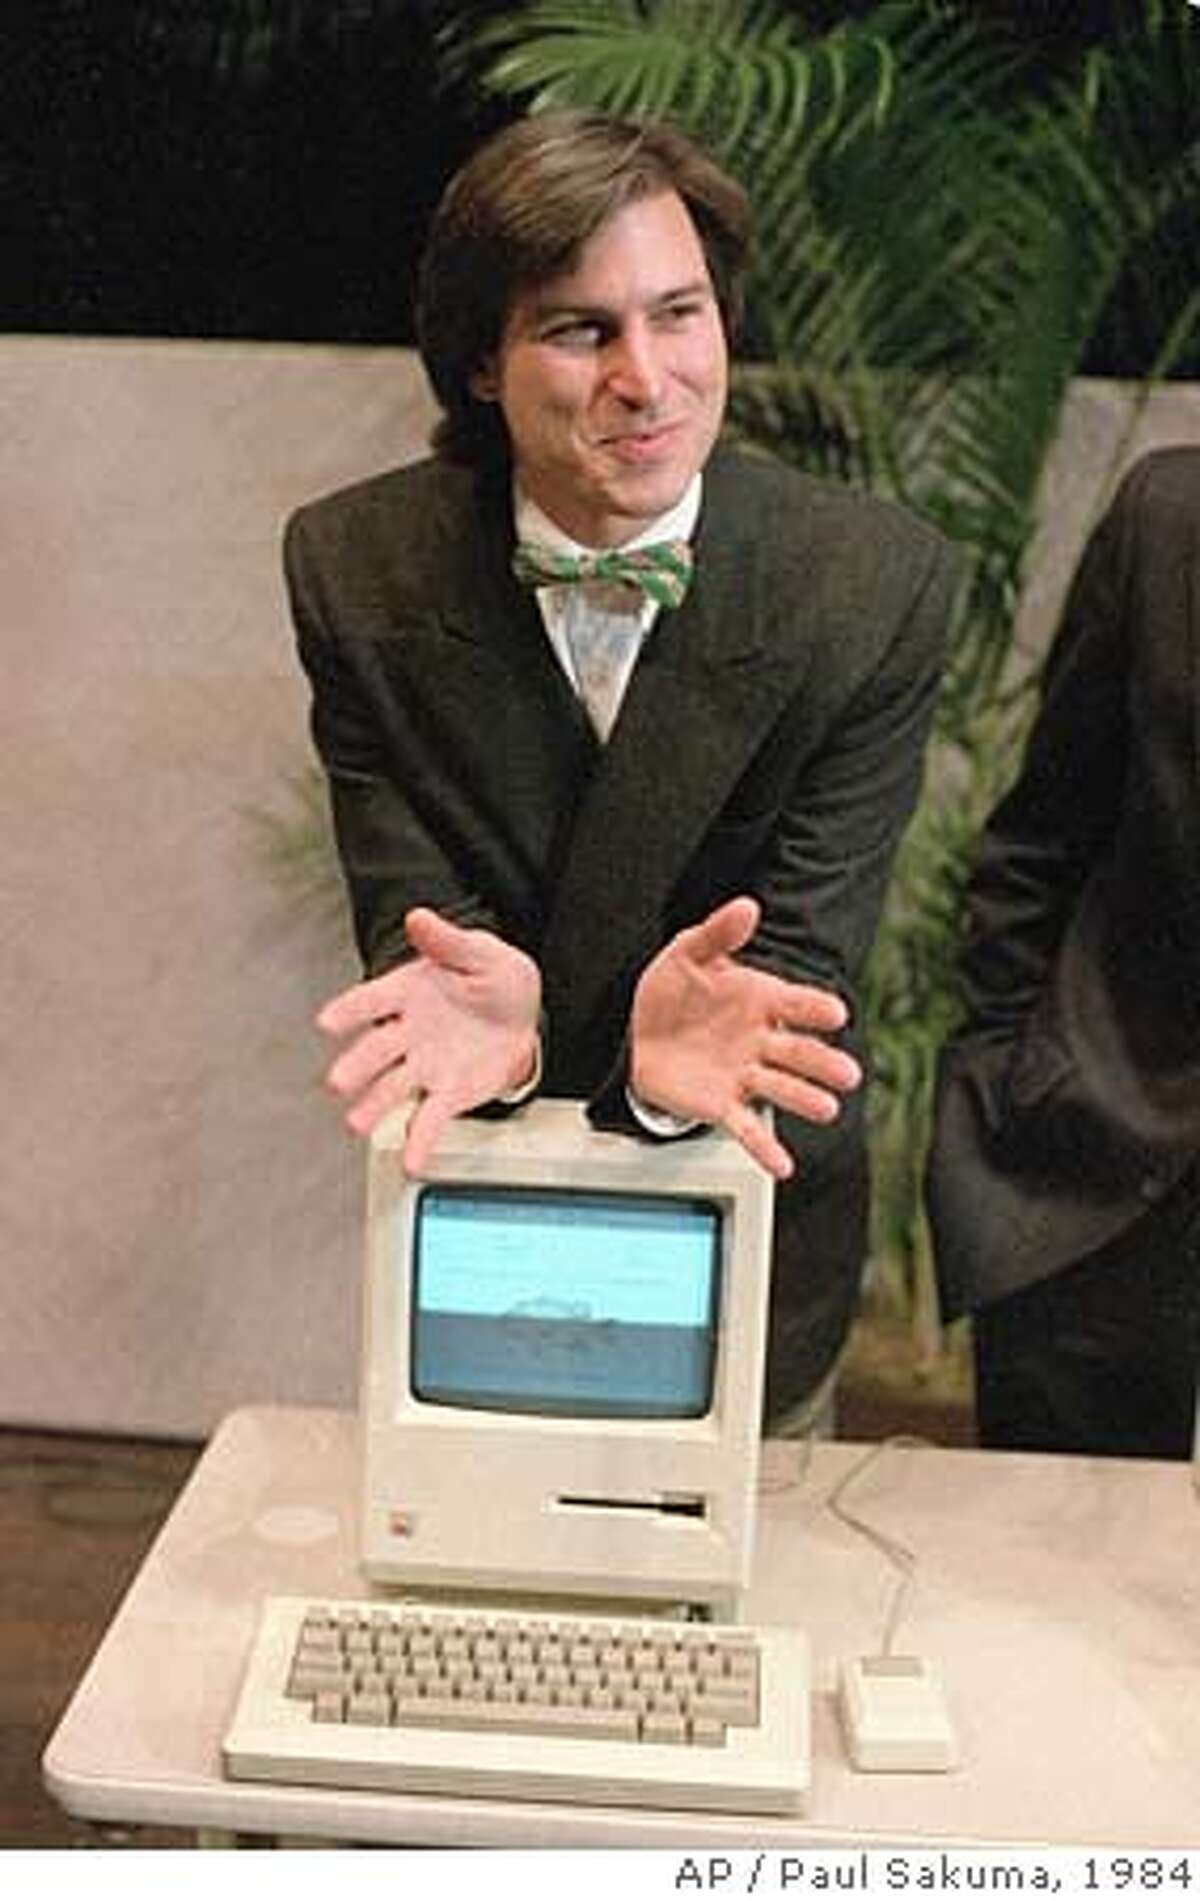 """** ADVANCE FOR SUNDAY MARCH 26 **FILE**Steven Jobs, chairman of the board of Apple Computer, leans on the new """"Macintosh"""" personal comptuer following a shareholder's meeting Jan. 24, 1984 in Cupertino, Ca. The Macintosh, priced at $2,495, is challenfing IBM in the personal computer market. As the storied company celebrates its 30th birthday in a week, Apple Computer Inc. will be showing its age: It will have brushed off its bruises from product failures and arguably misguided decisions to emerge with a shine that's more than skin-deep. Its luster now is brighter than ever, but for all of its recent successes, Apple also has its share of challenges ahead as it matures into a digital media provider. (AP Photo/Paul Sakuma)"""